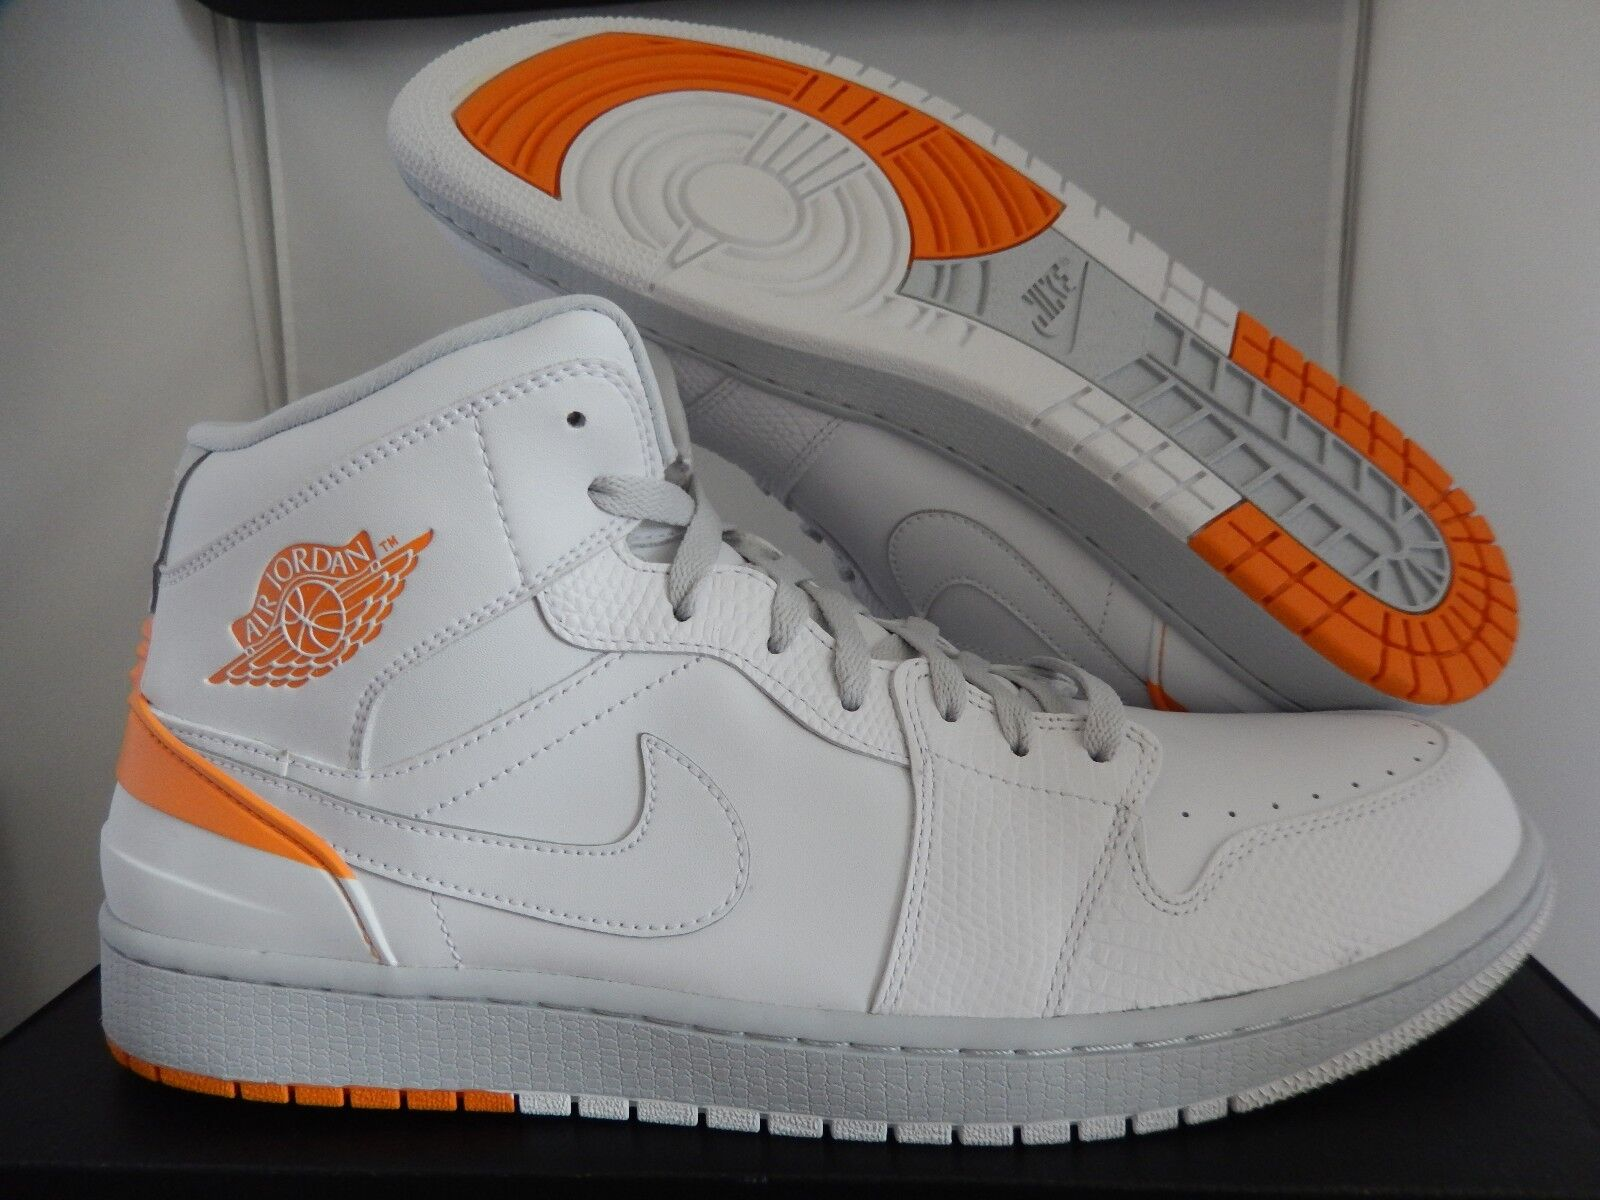 NIKE AIR JORDAN 1 RETRO 86 WHITE-KUMQUAT-PURE PLATINUM SZ 14 [644490-115]